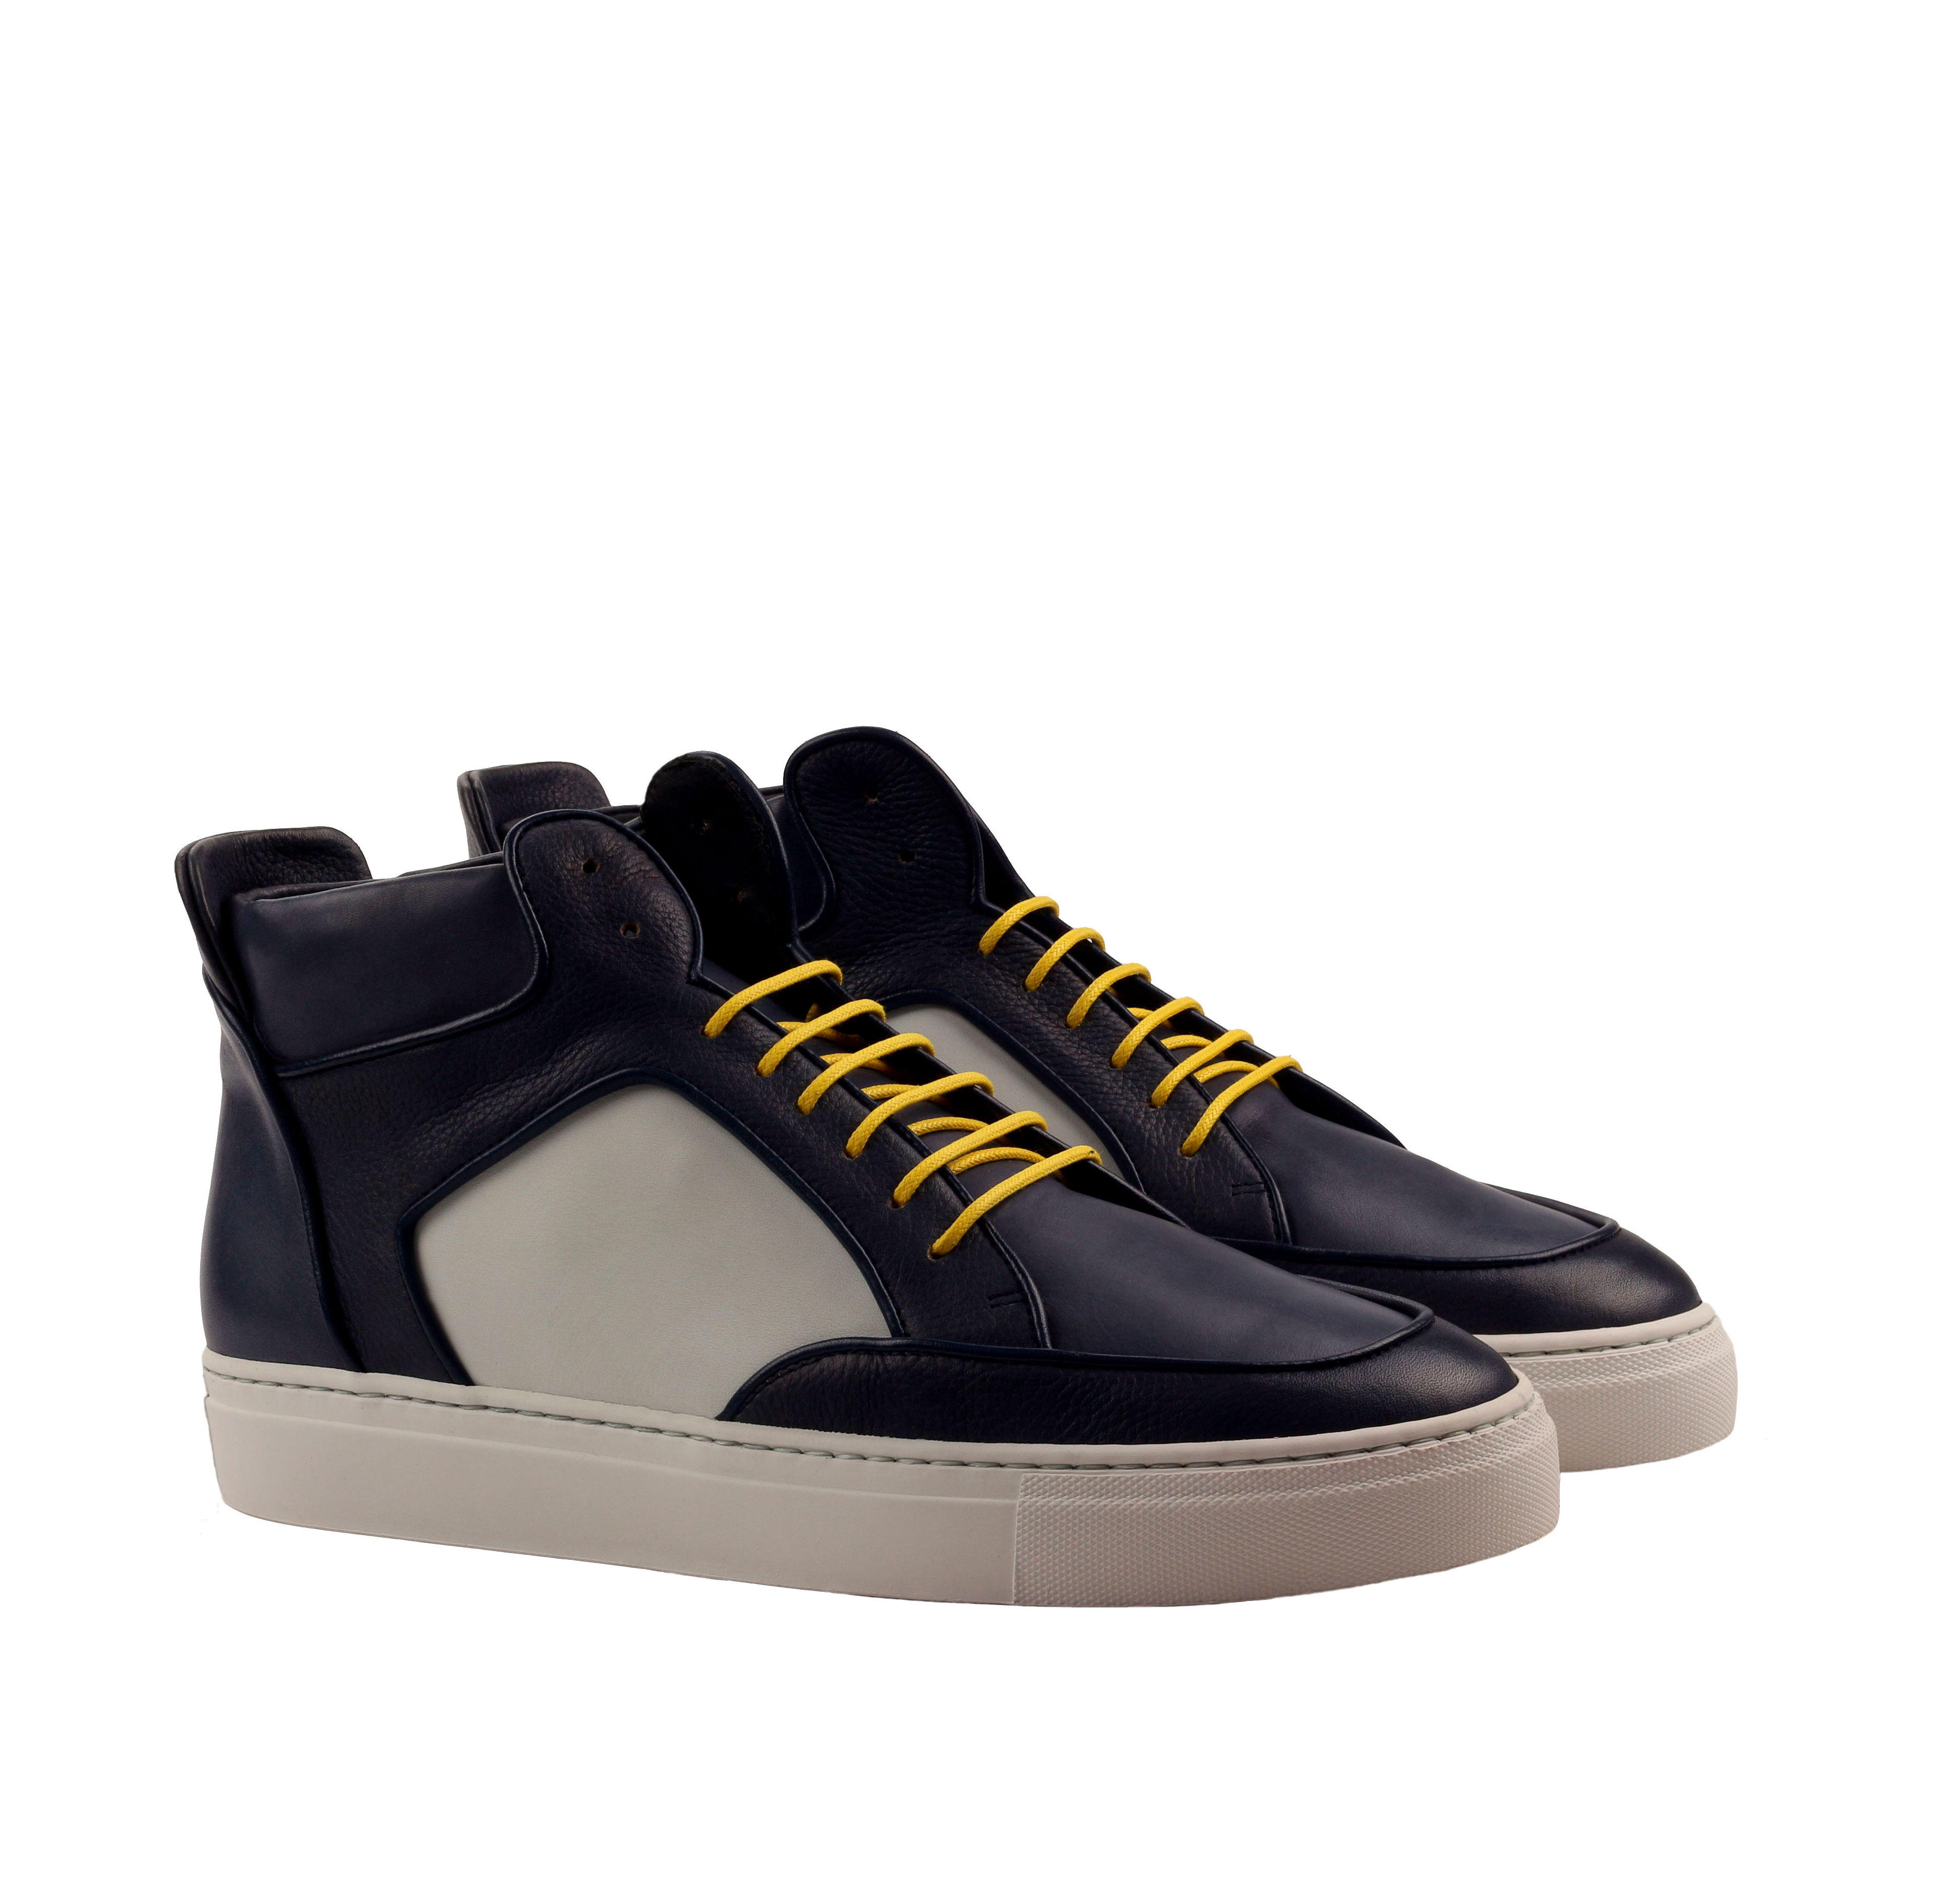 Manor of London 'The Hamilton' Painted Navy & White Calfskin Leather High-Top Trainer Luxury Custom Initials Monogrammed Front Side View